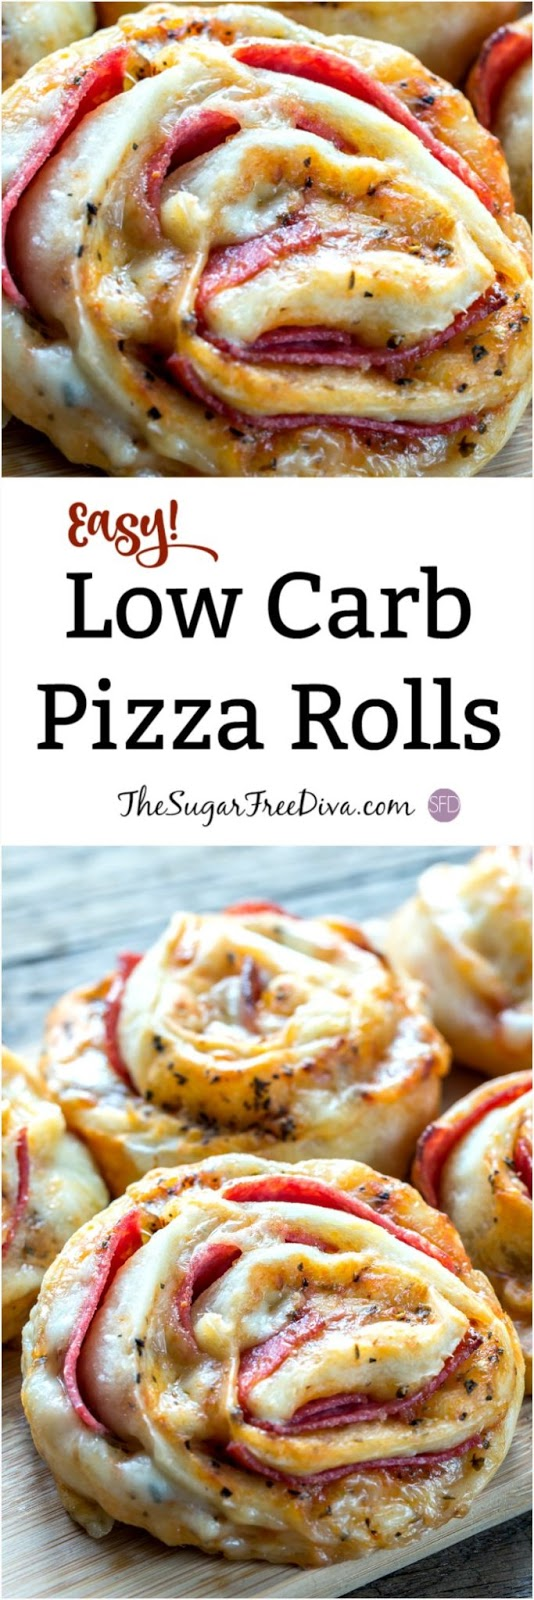 Easy Low Carb Pizza Rolls